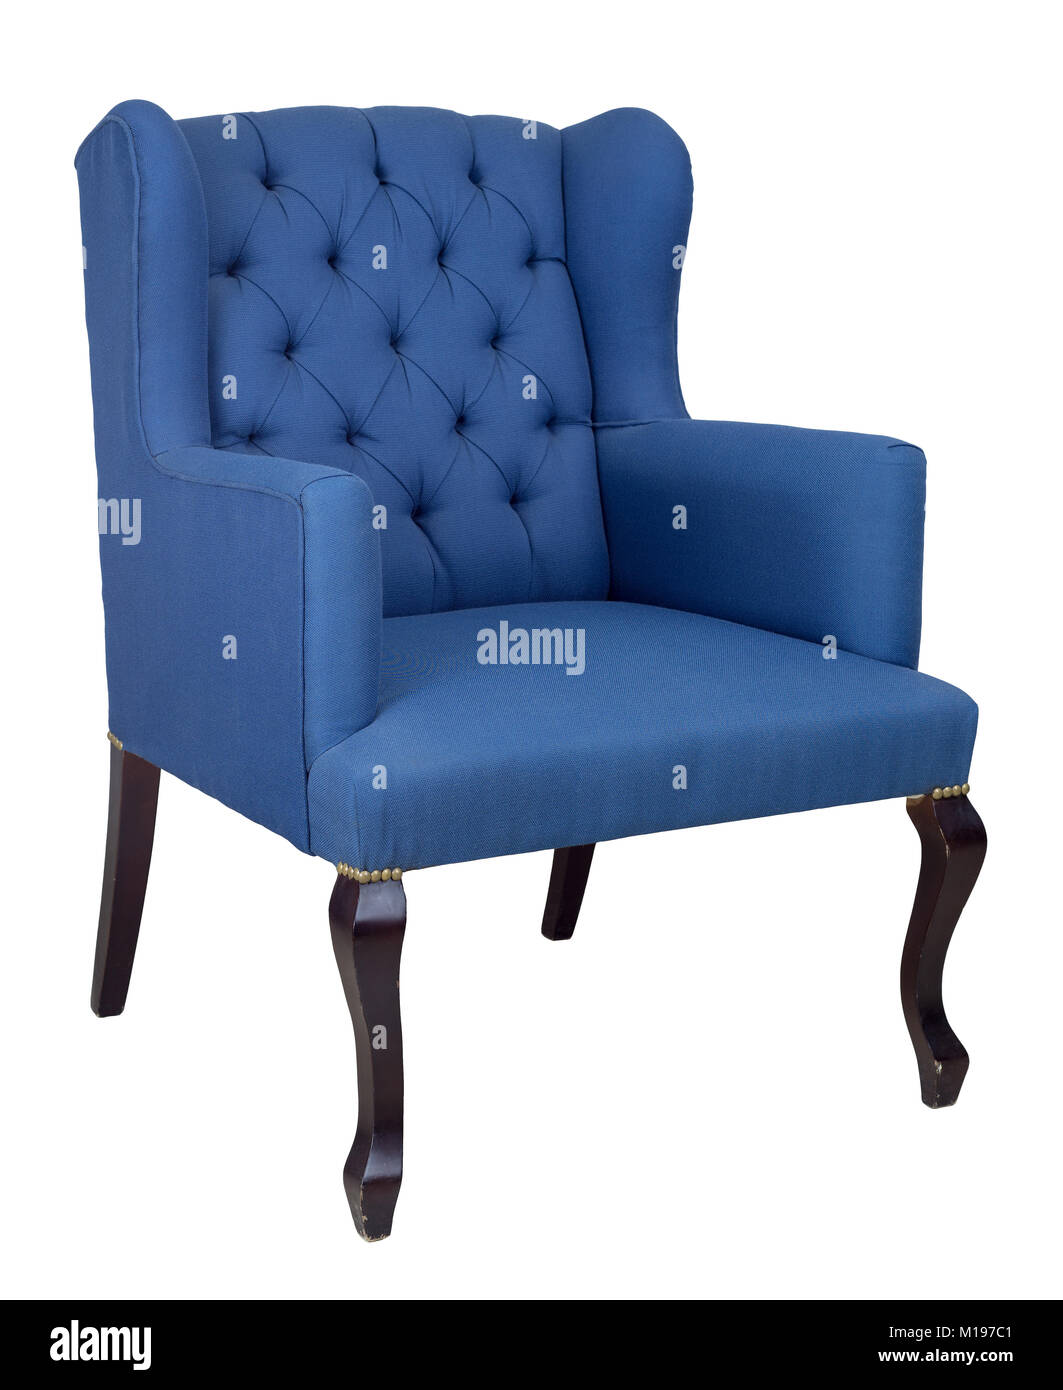 Vintage Furniture - French blue wingback armchair with dark brown wooden legs isolated on white background including - Stock Image